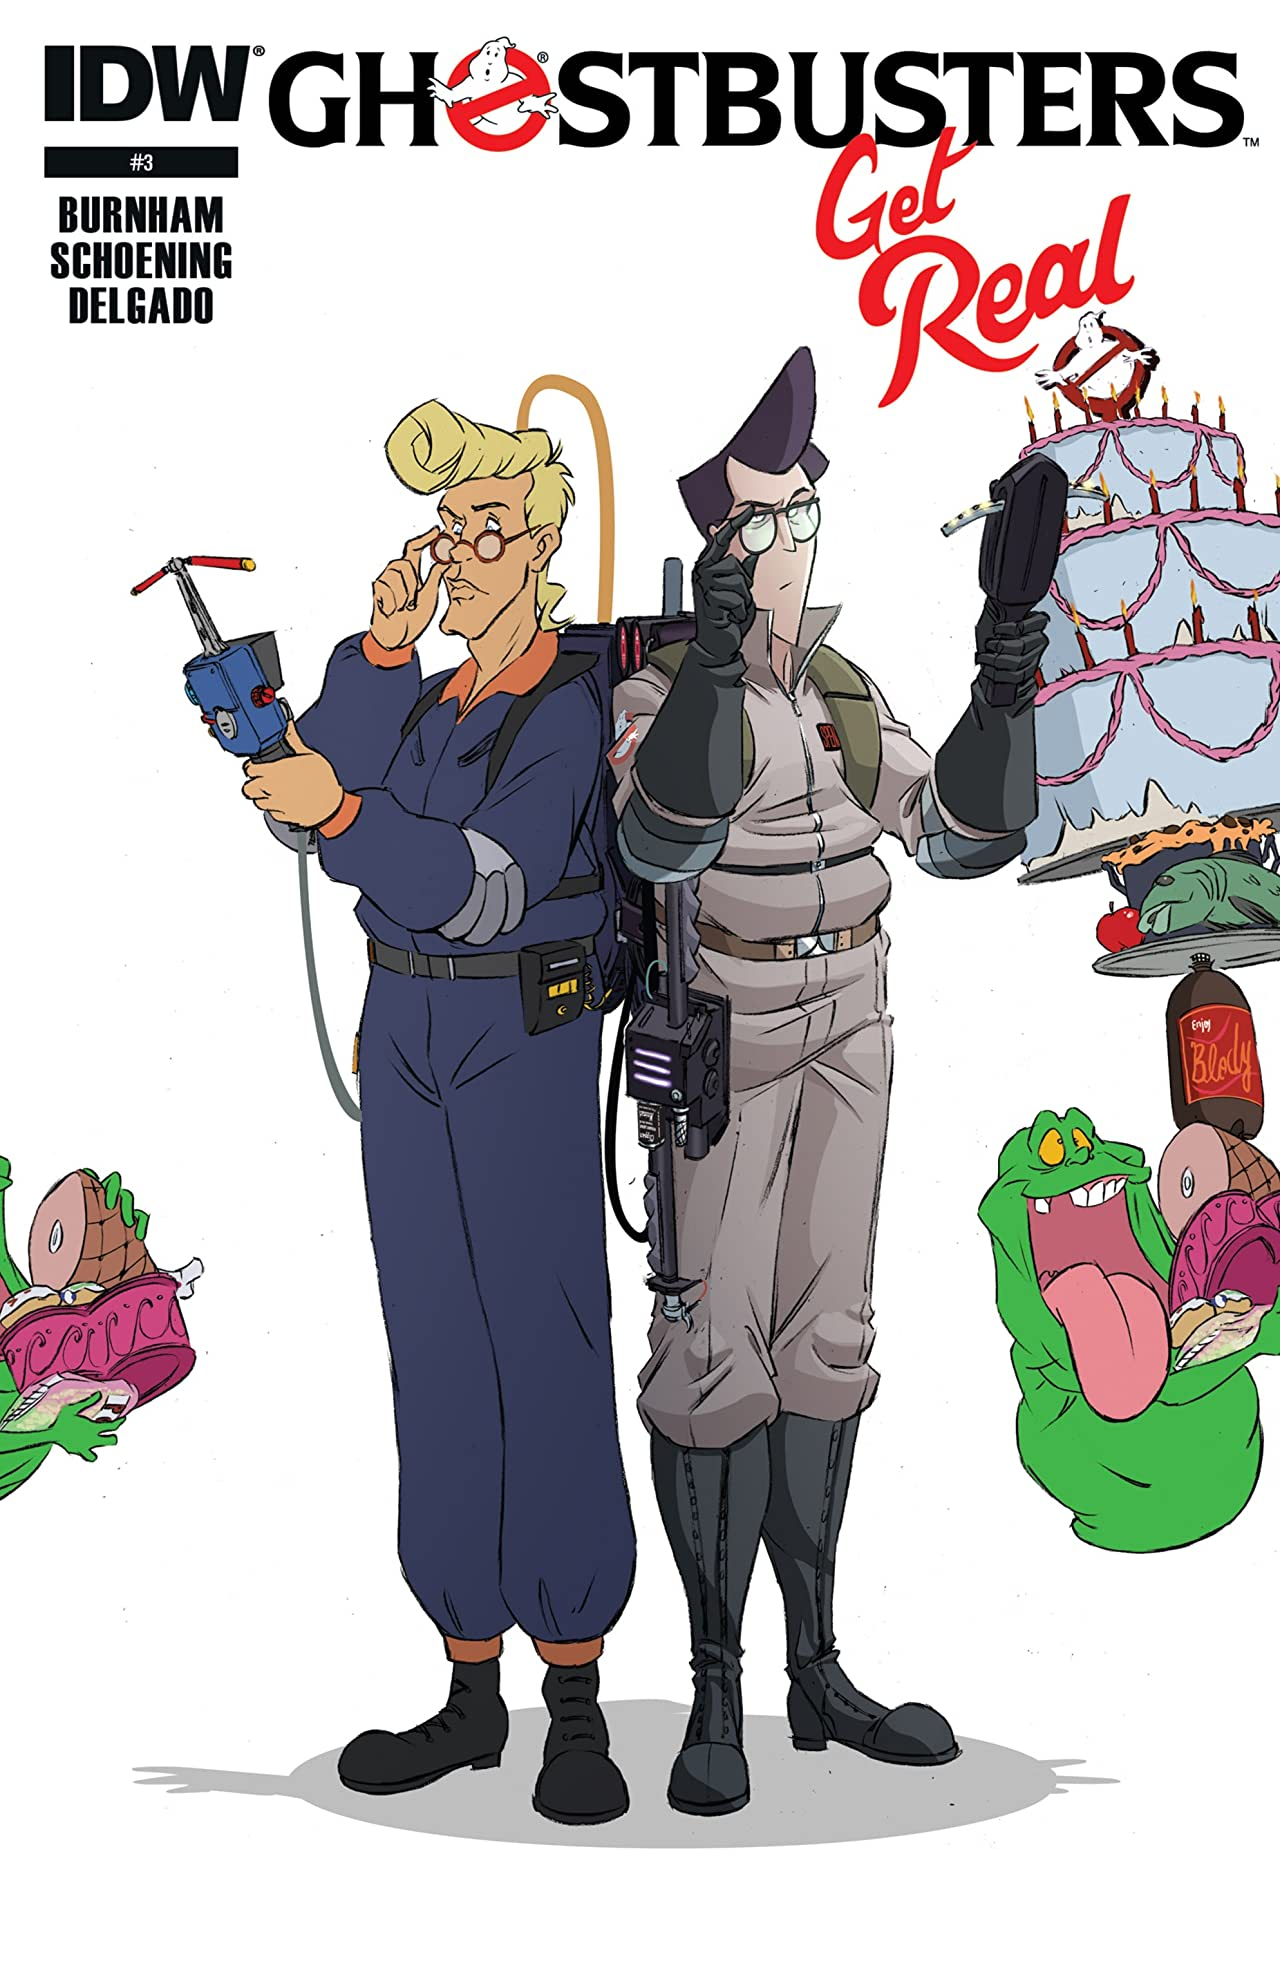 Ghostbusters: Get Real #3 (of 4)